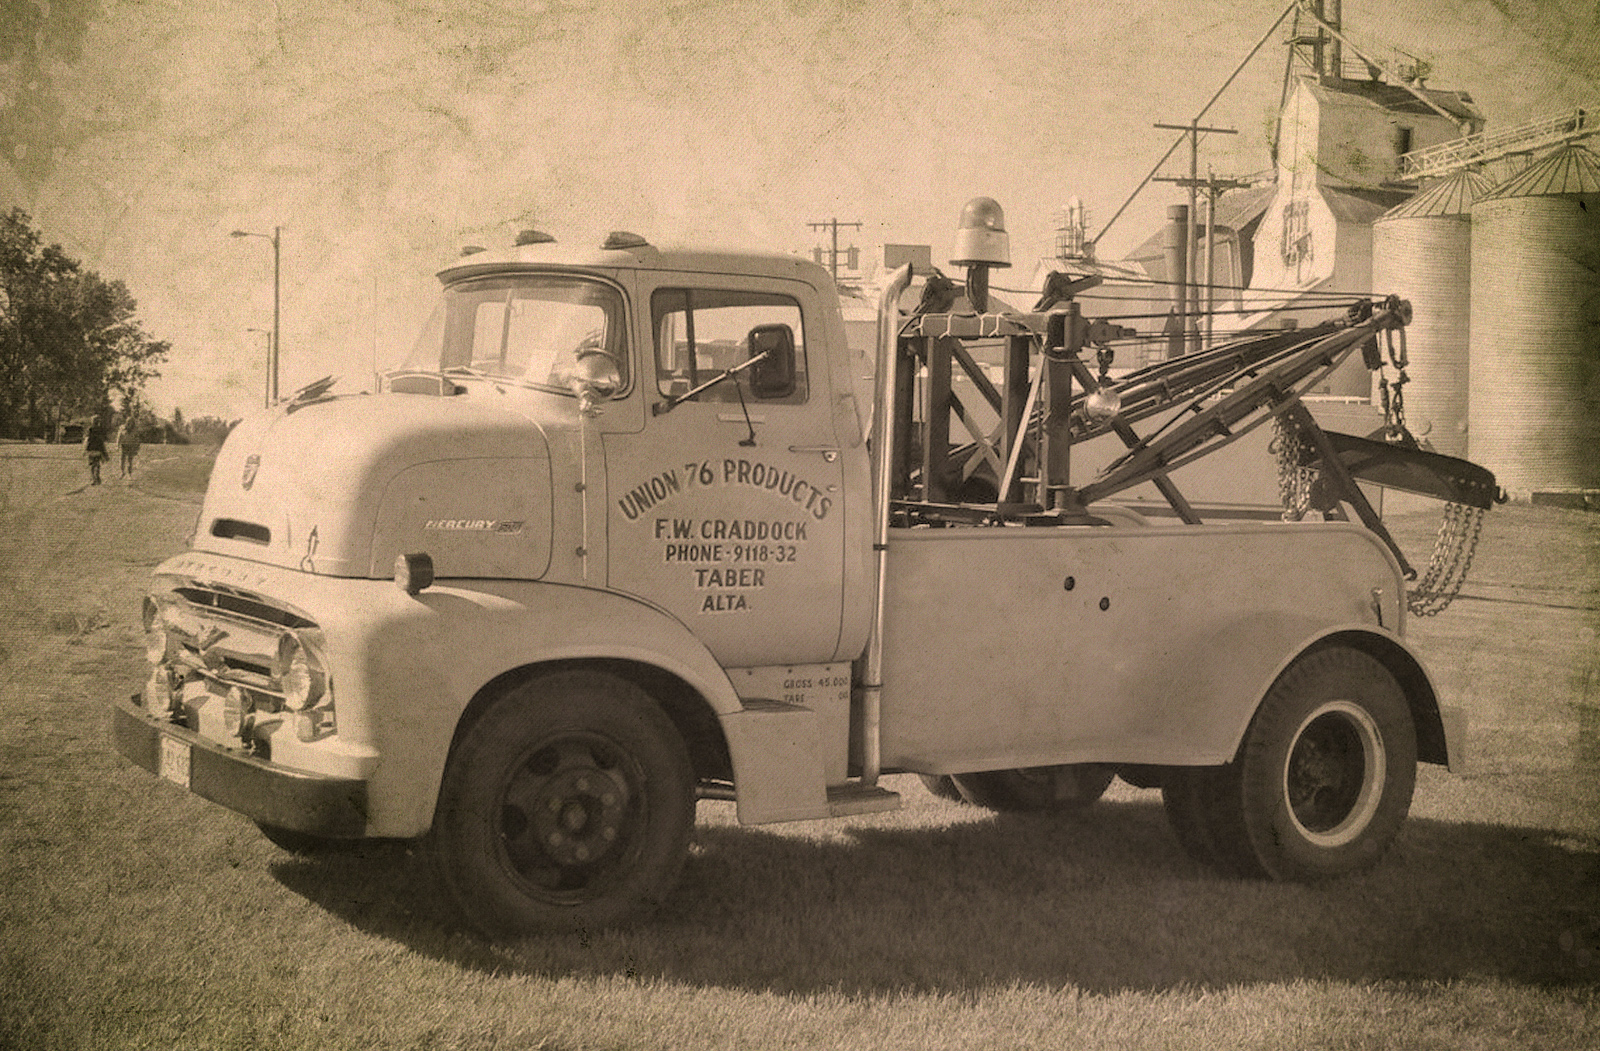 Classic Hot Rods For Sale. Find Classic Hot Rods For Sale 1957 ford coe photos